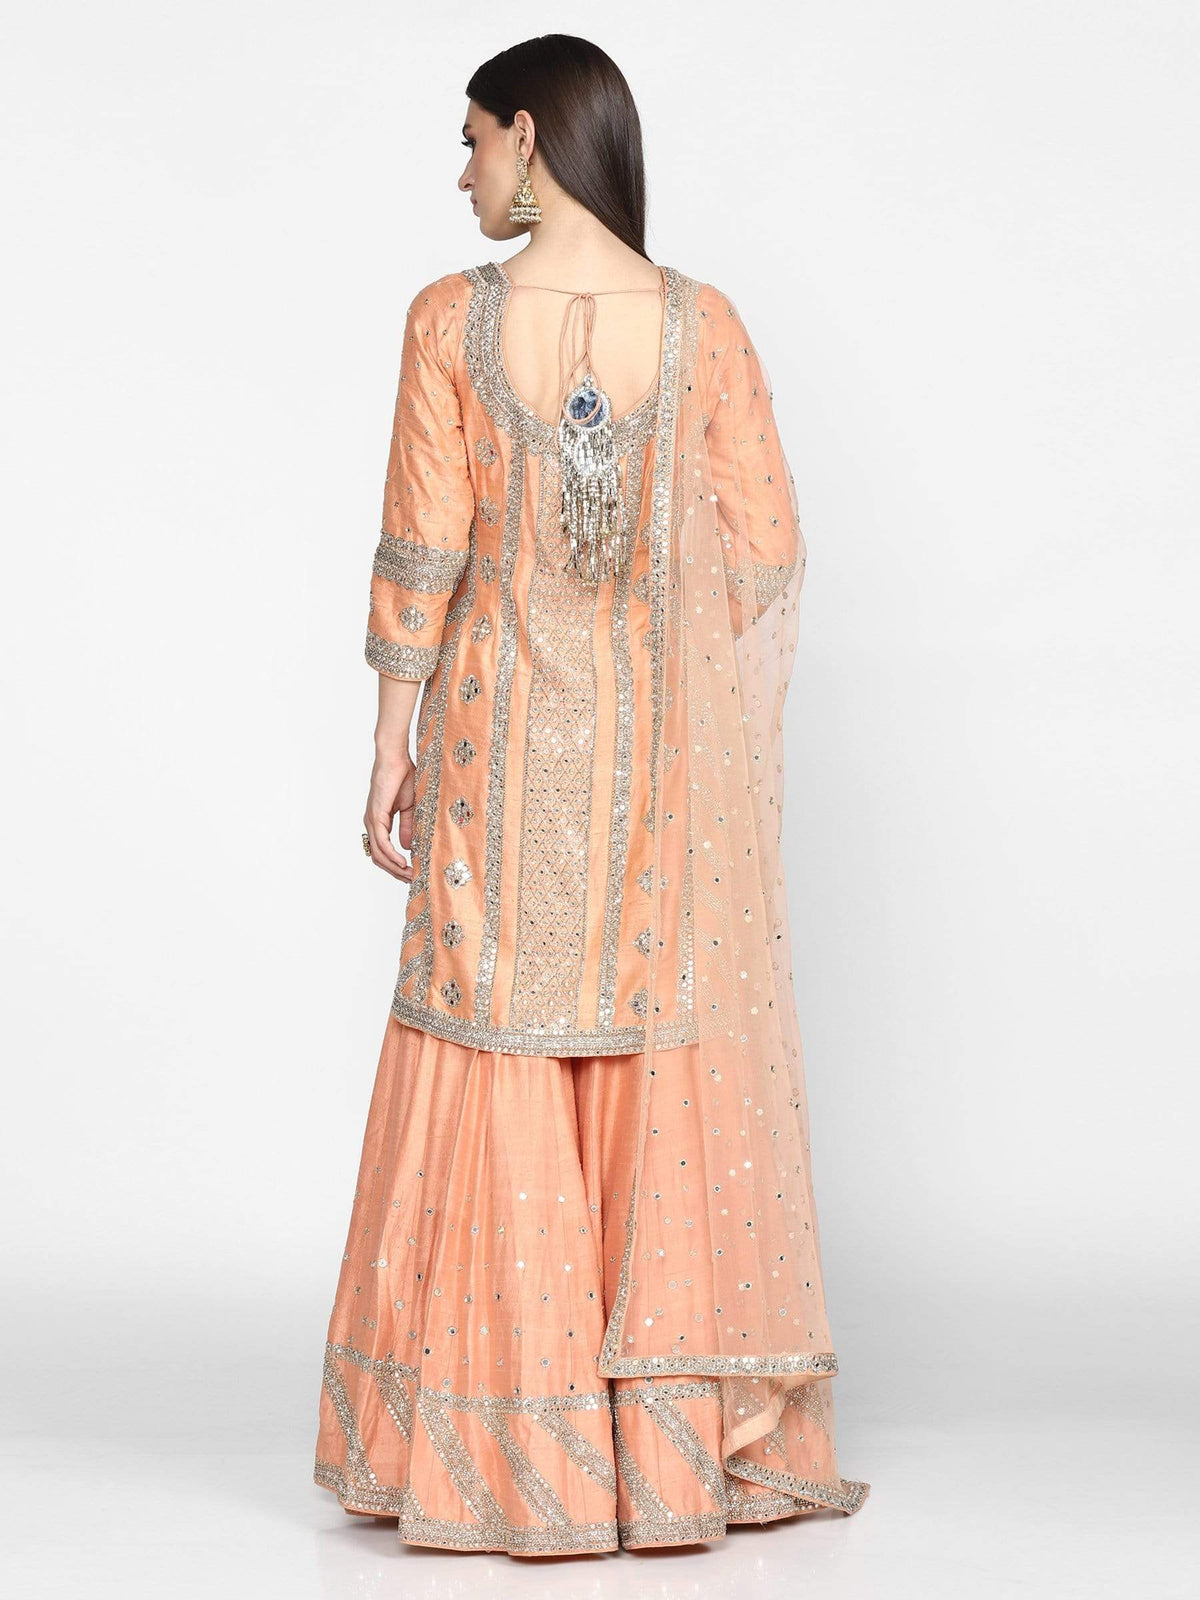 Abhinav Mishra Shararas Peach embroidered sharara set